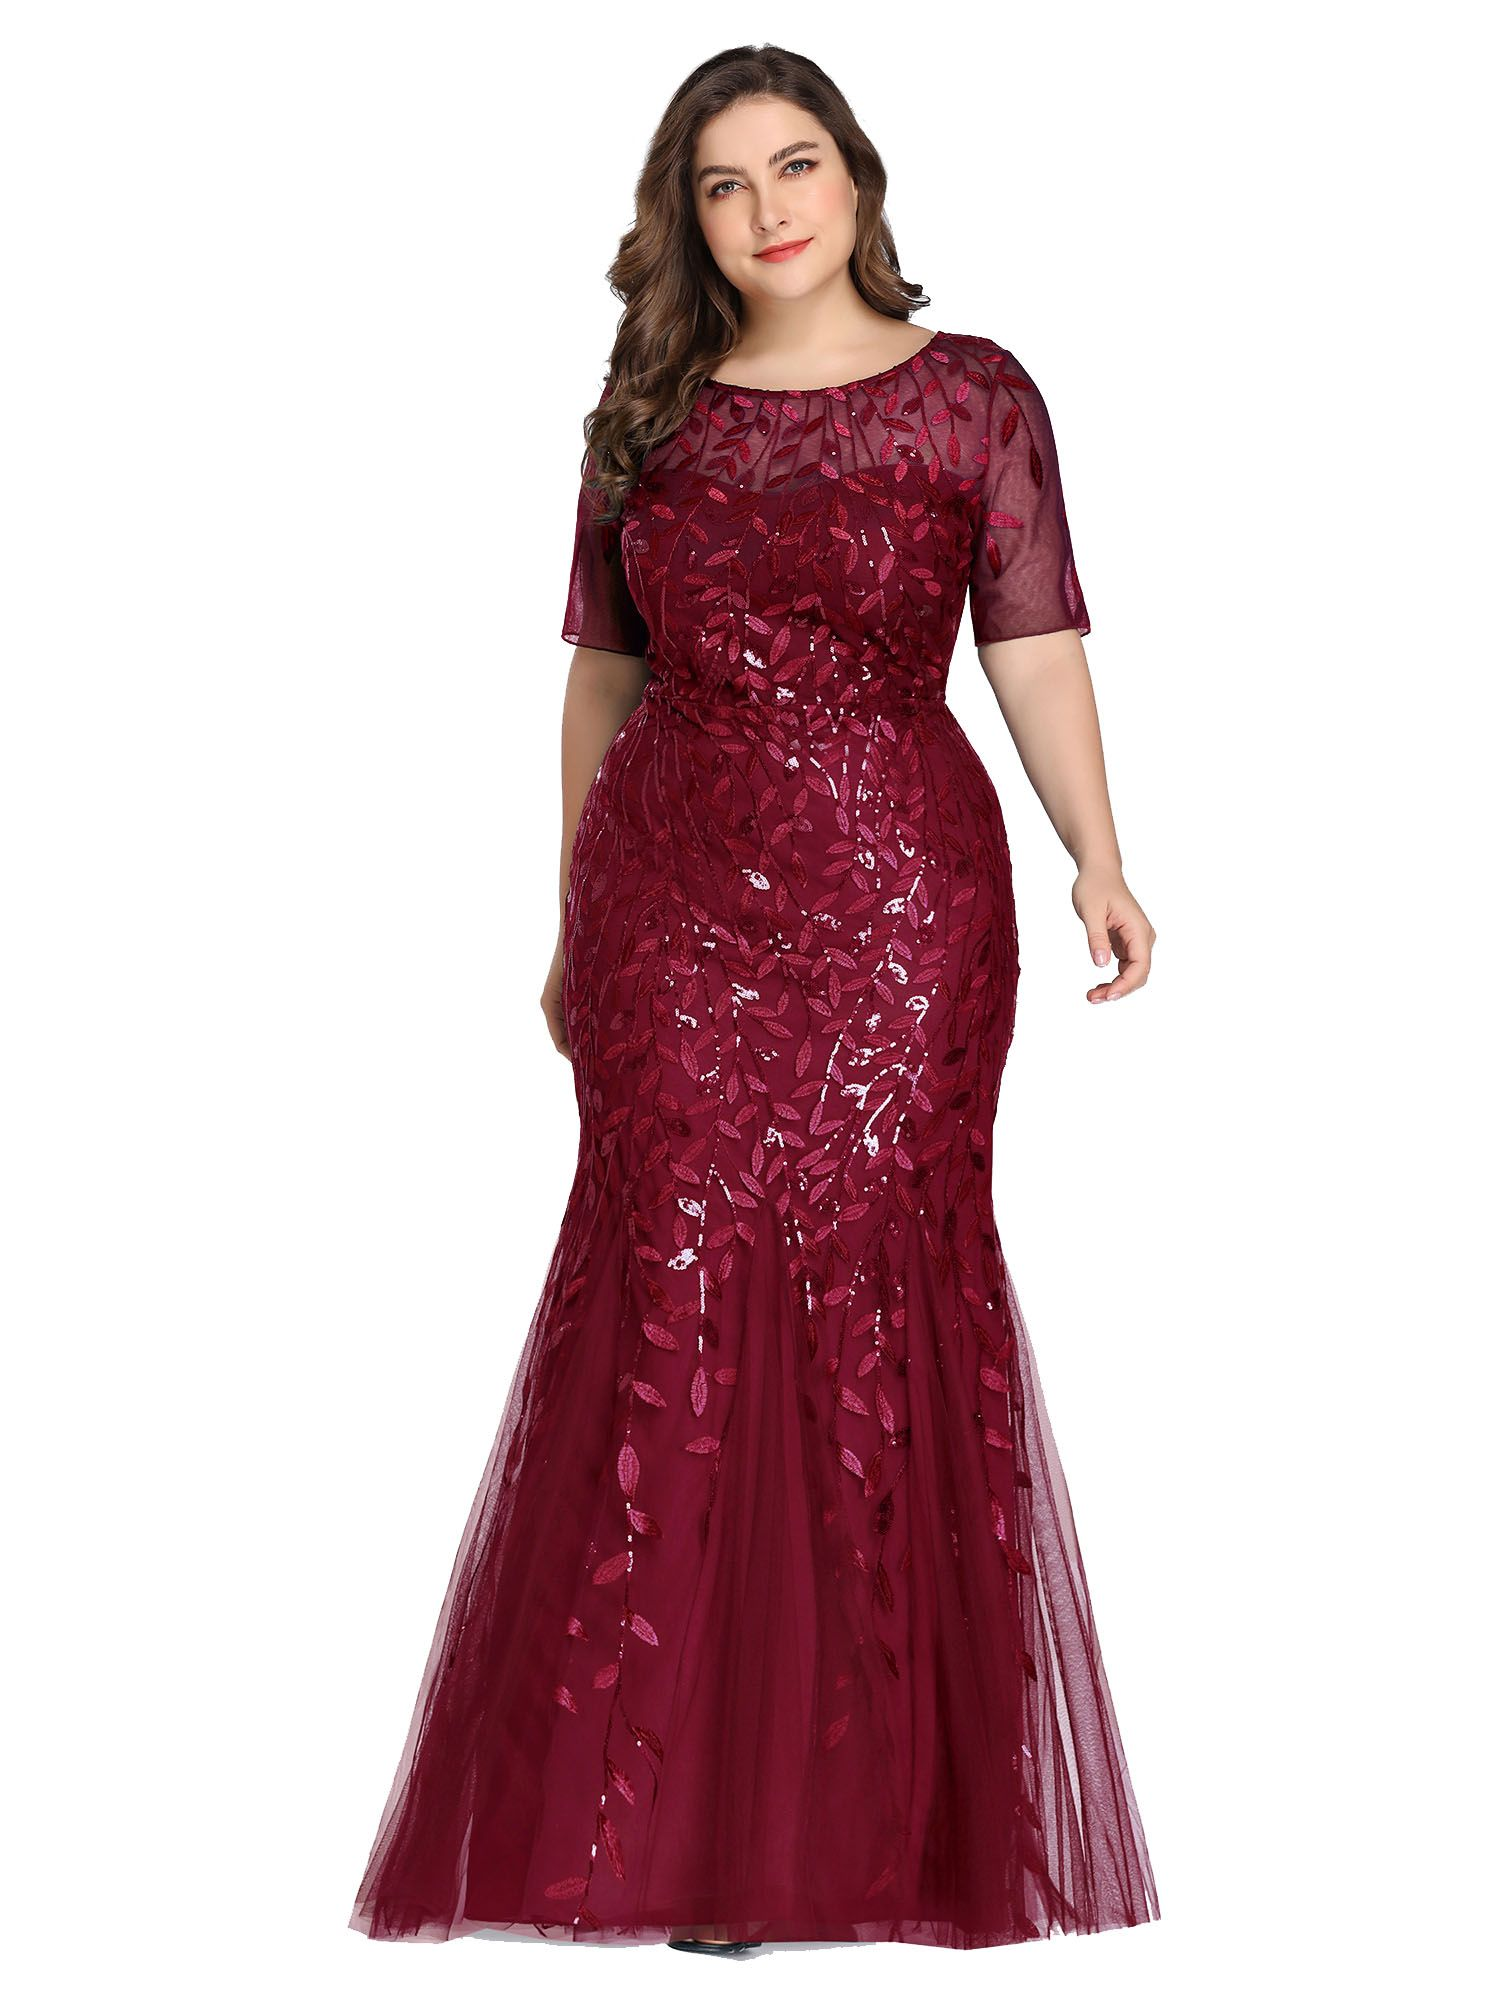 Ever Pretty Ever Pretty Womens Plus Size Long Holiday Party Dresses For Women 77072 Burgundy Us22 Walmart Com Maxi Dress Party Party Dresses For Women Holiday Party Dresses [ 2000 x 1500 Pixel ]